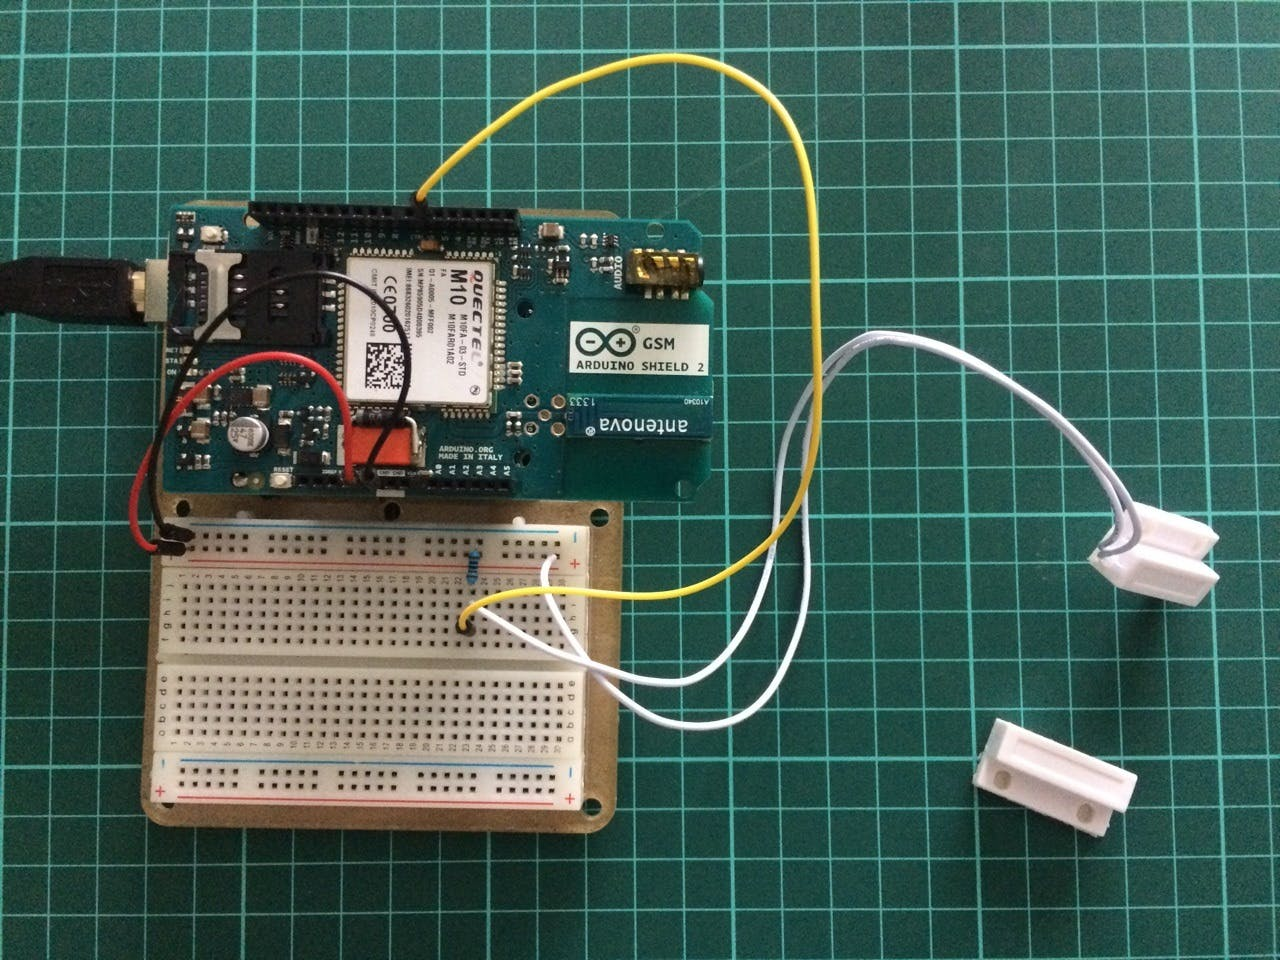 Arduino UNO with GSM shield on to of it and connected reed switch.